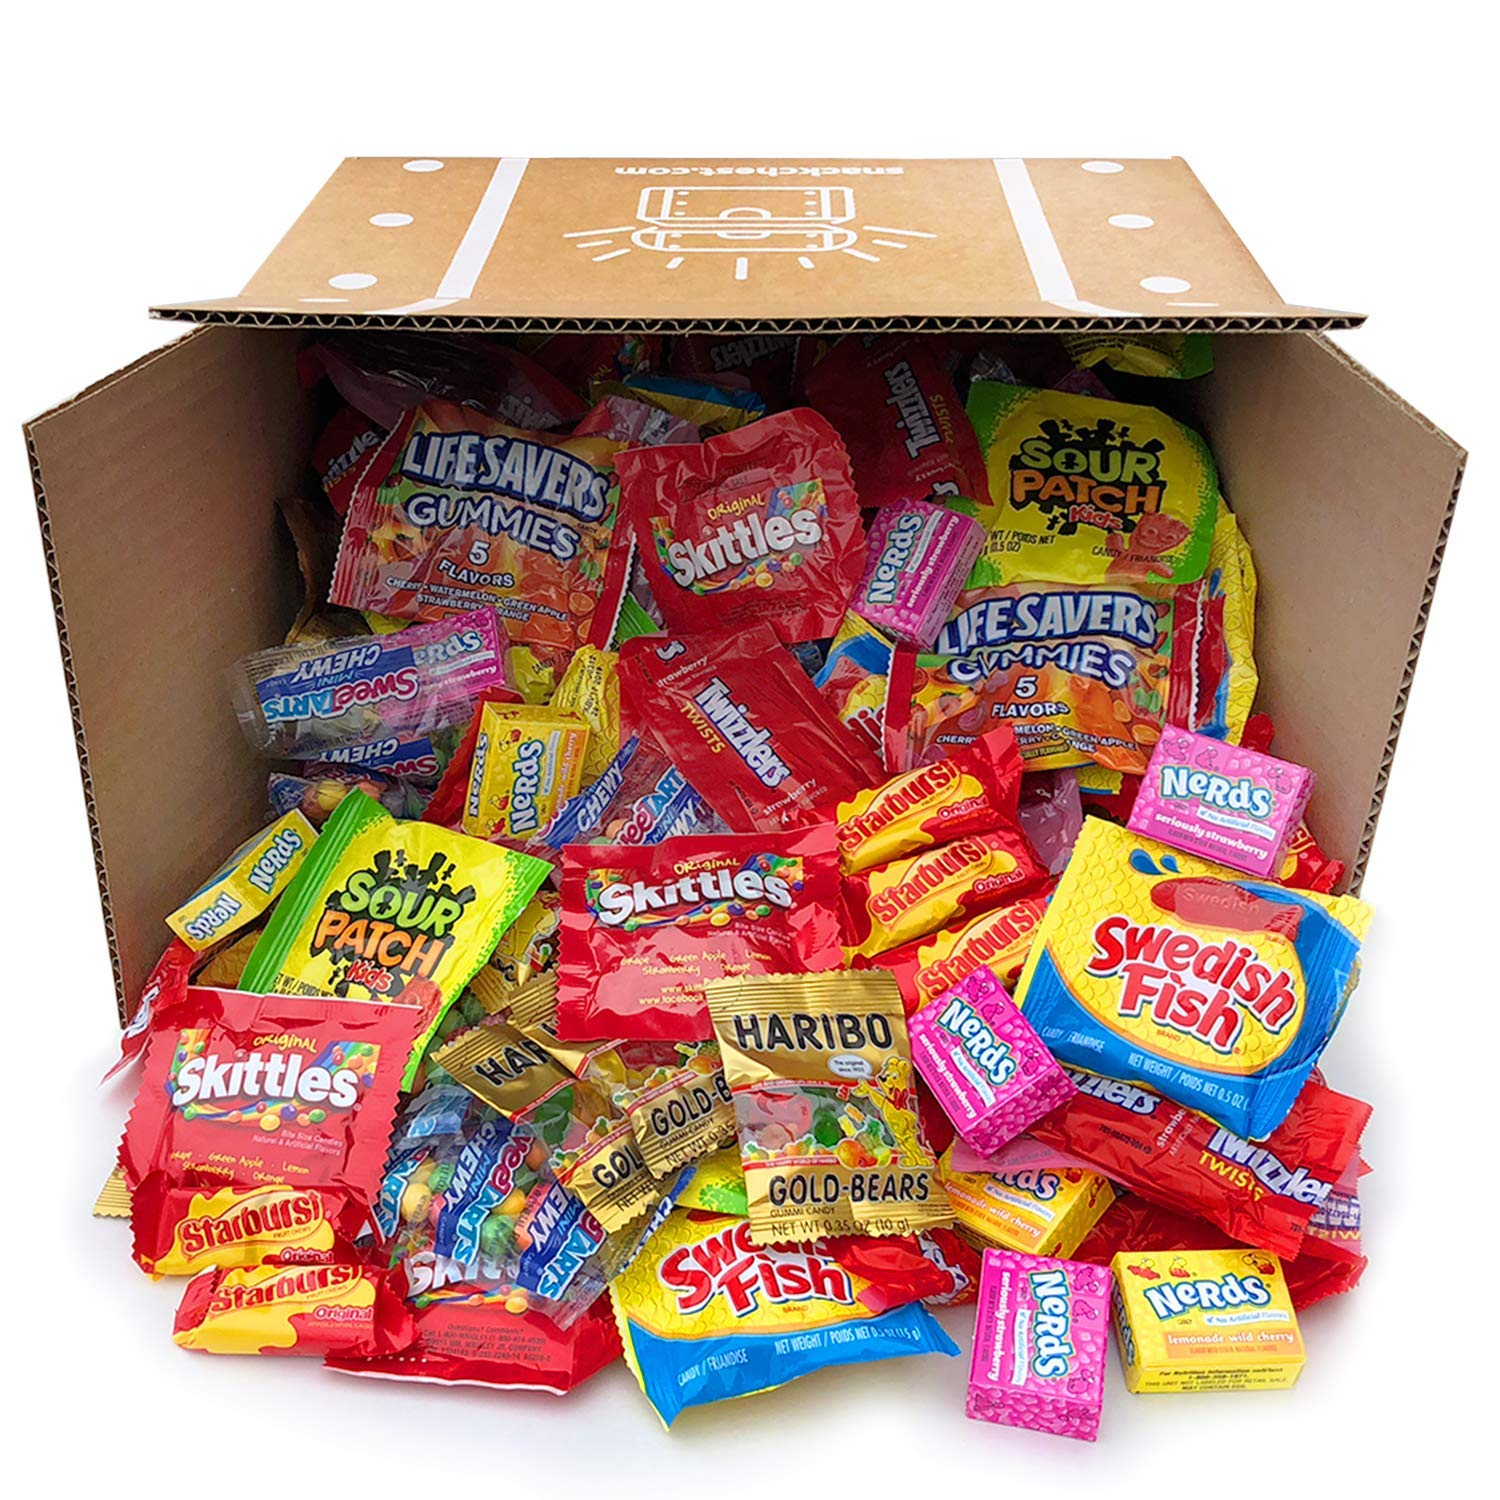 Snack Chest Assorted Candy Party Mix Bulk Twizzlers Nerds Swedish Fish Sour Patch Skittles Starburst and Much More of Your Favorite Candy. Over 200 Individually Wrapped Candy (90 oz) by Snack Chest